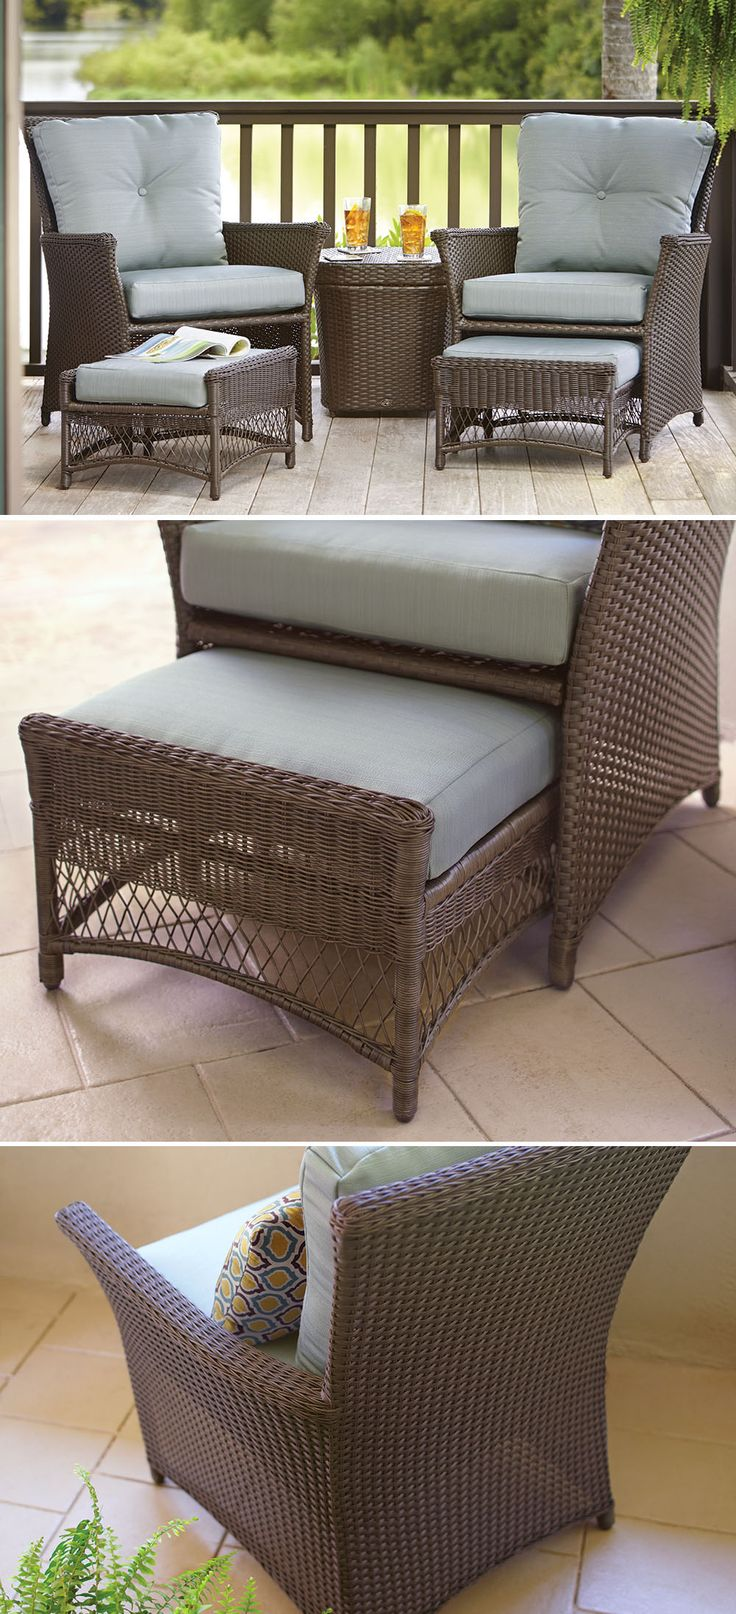 Best 25 Small patio furniture ideas on Pinterest Patio  : 68df25aad92b0b2ed10505c154f3631b patio furniture for small spaces front porch patio furniture from www.pinterest.com size 736 x 1614 jpeg 221kB